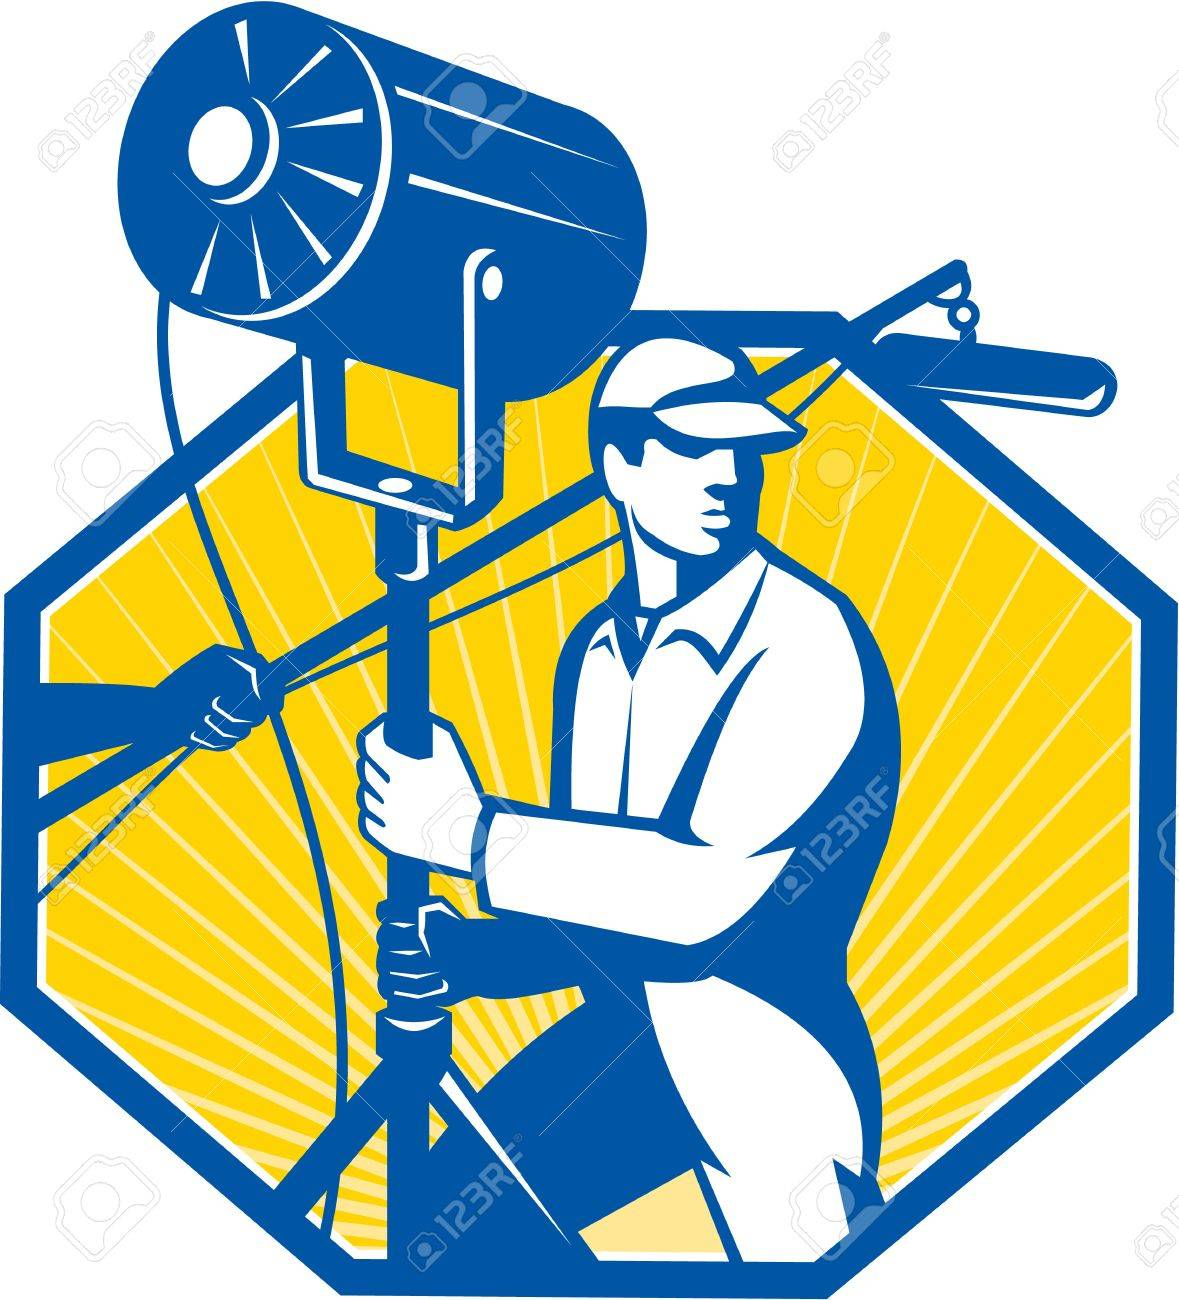 Illustration of a electrical lighting technician crew with fresnel spotlight and sound boom microphone set inside  sc 1 st  123RF Stock Photos & Illustration Of A Electrical Lighting Technician Crew With Fresnel ... azcodes.com